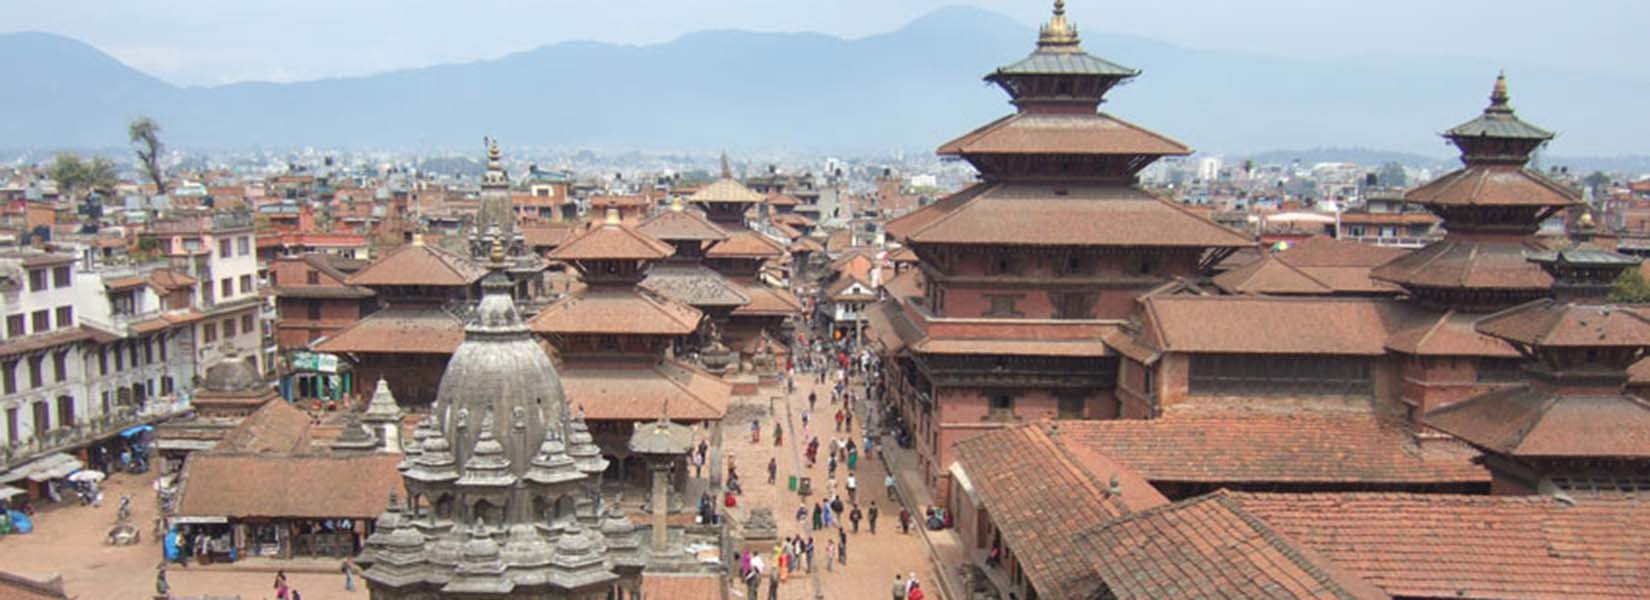 Nepal Bhutan and Tibet Tour (14 Days)